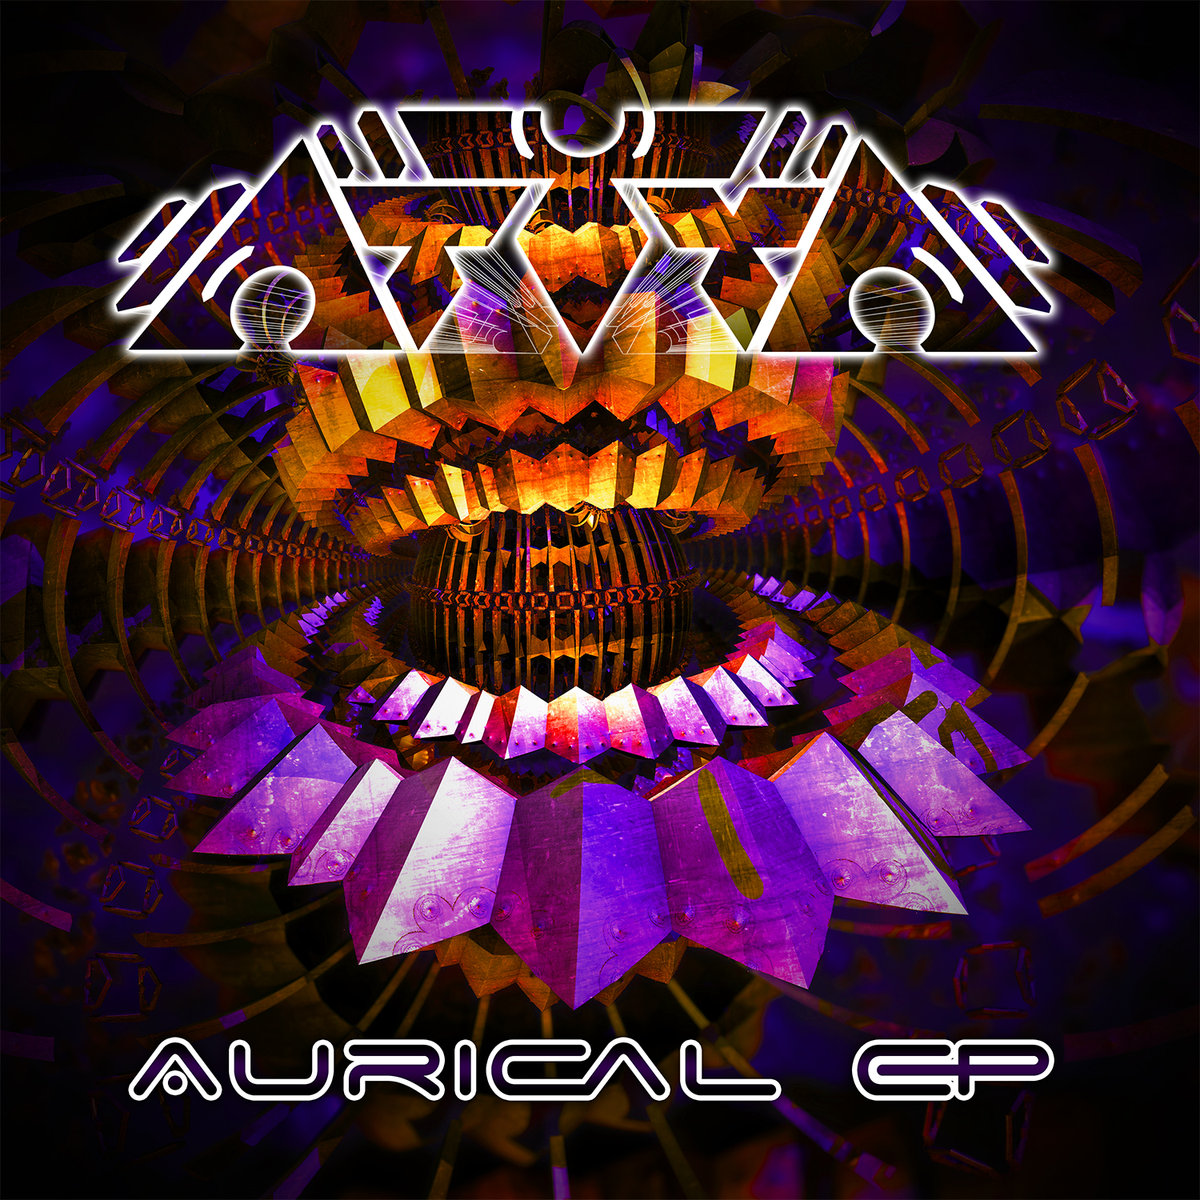 AtYyA - Immortal @ 'Aurical' album (432hz, electronic)